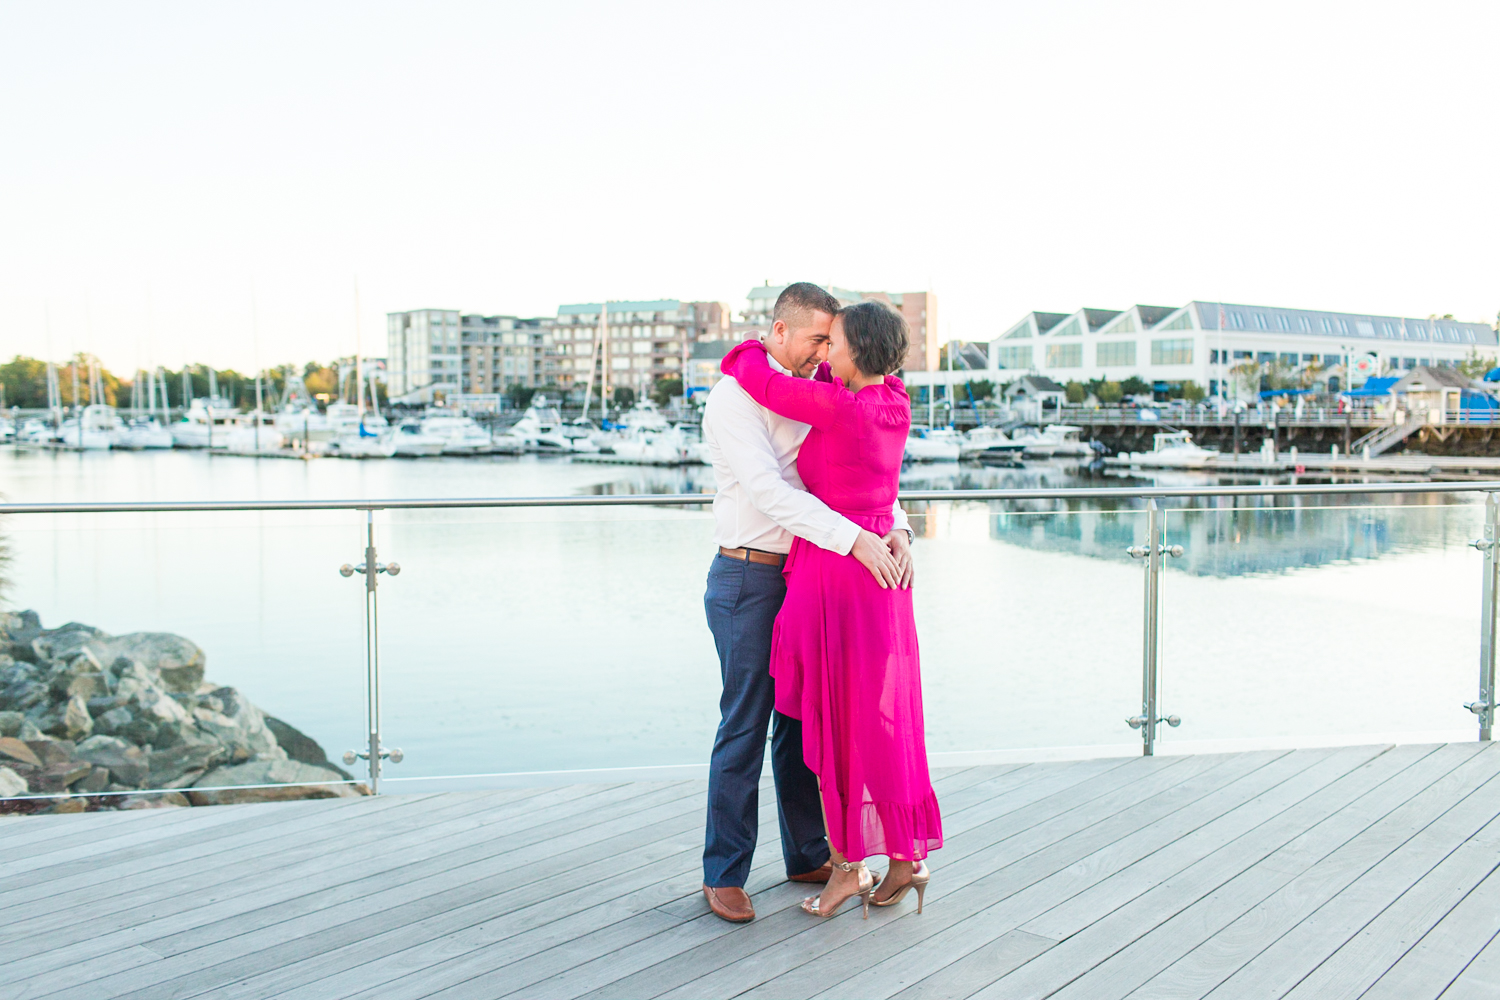 harbor-point-stamford-engagement-session-connecticut-new-york-hawaii-engagement-photographer-session-prep-shaina-lee-photography-photo-1.jpg